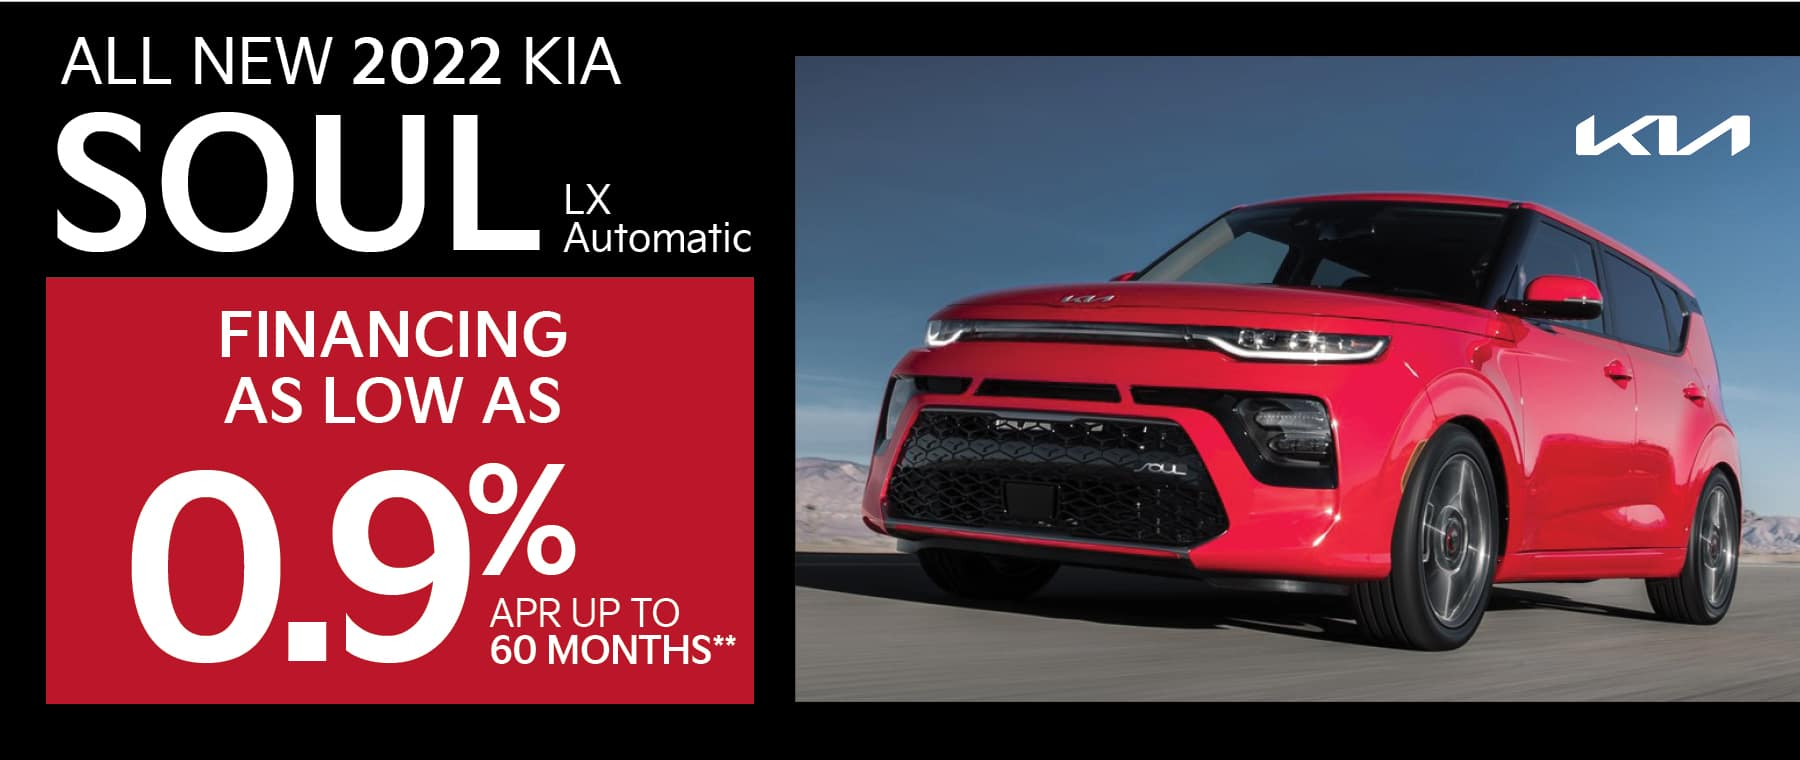 Smail Kia 0.9% APR for up to 60 months